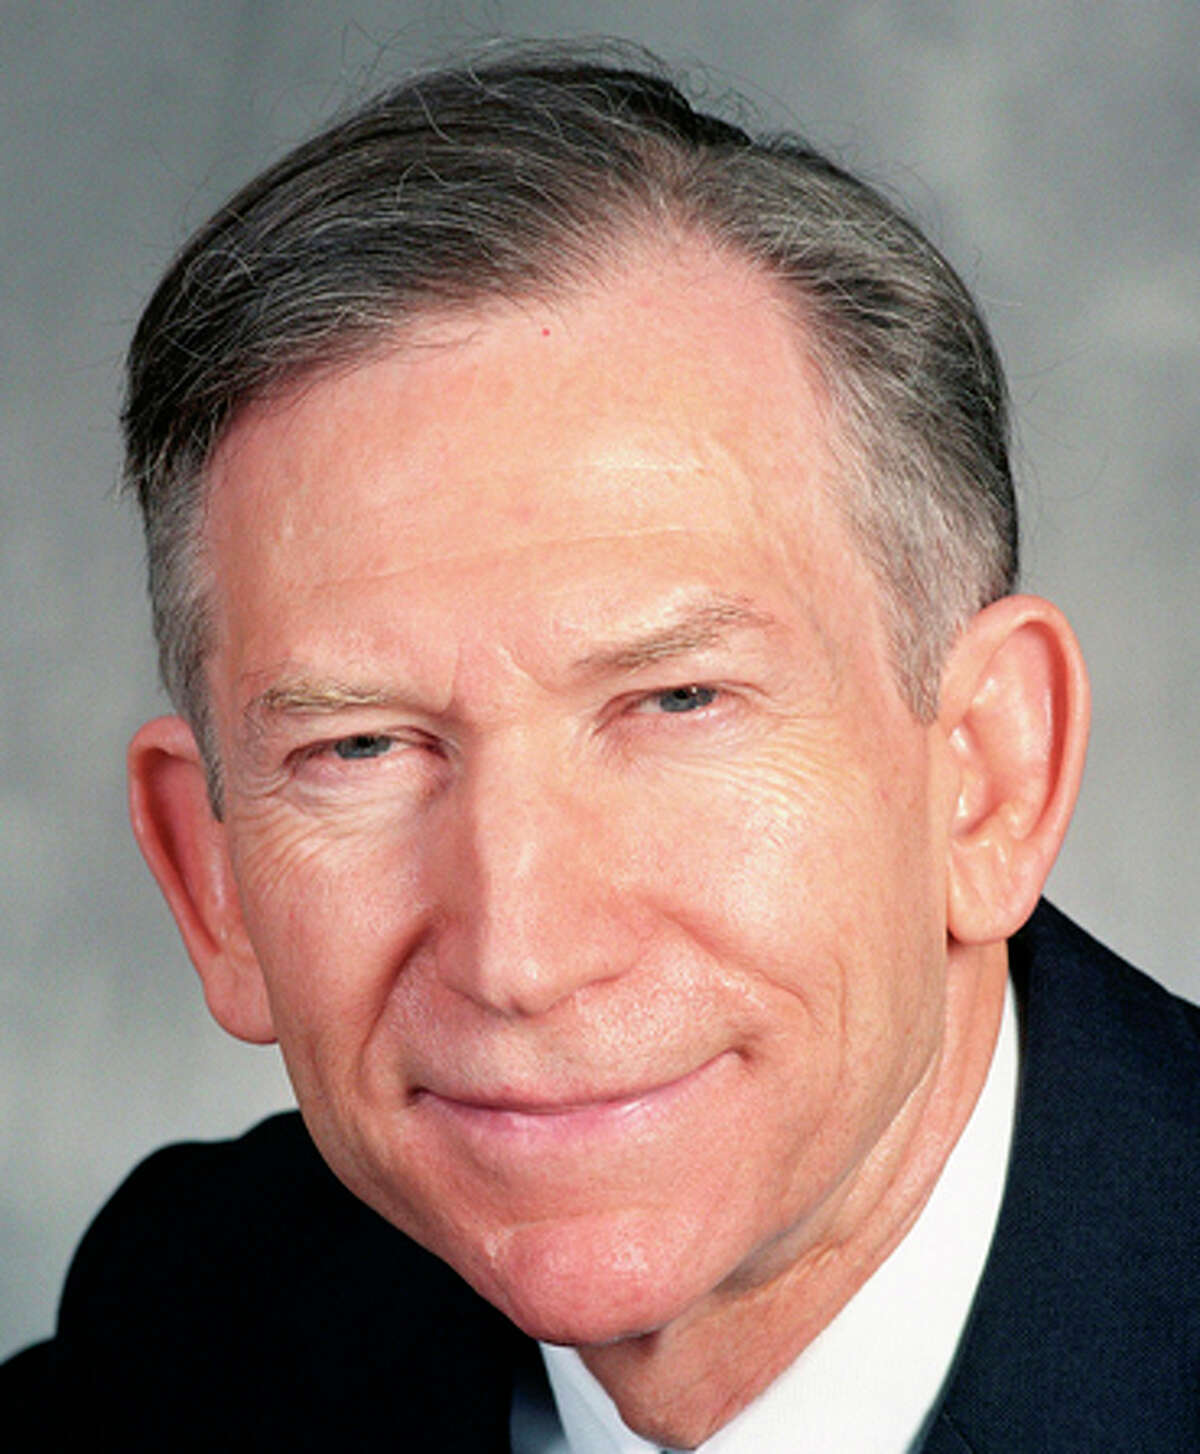 H-E-B Chairman and CEO Charles Butt.